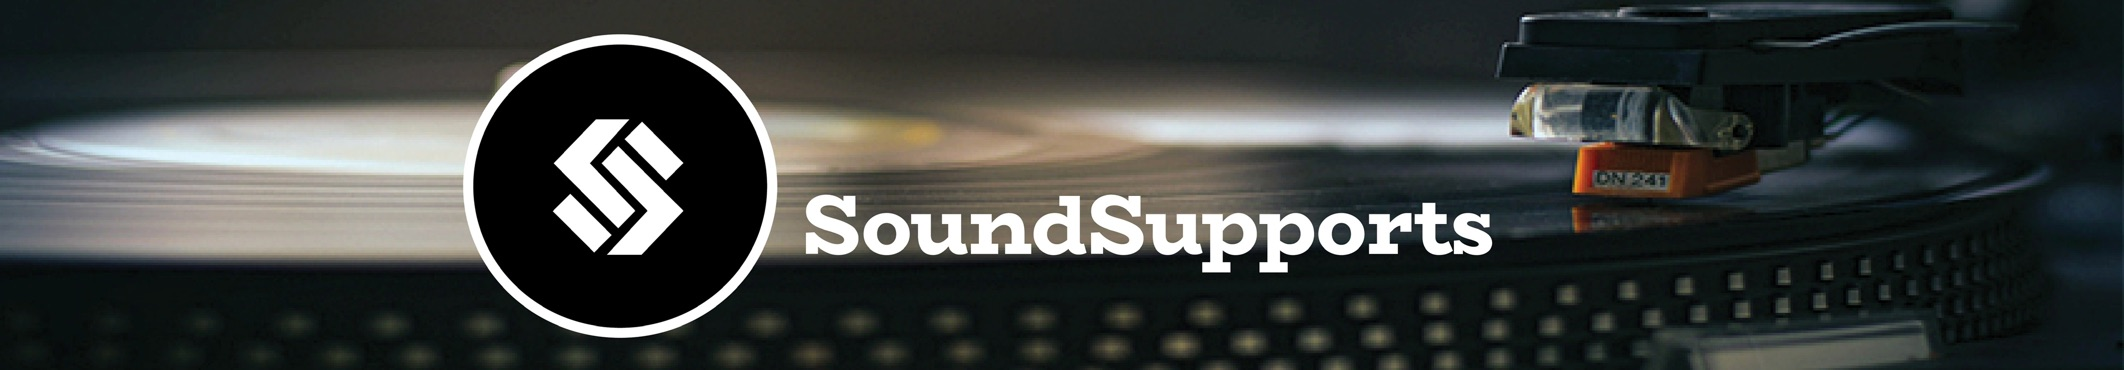 SoundSupports